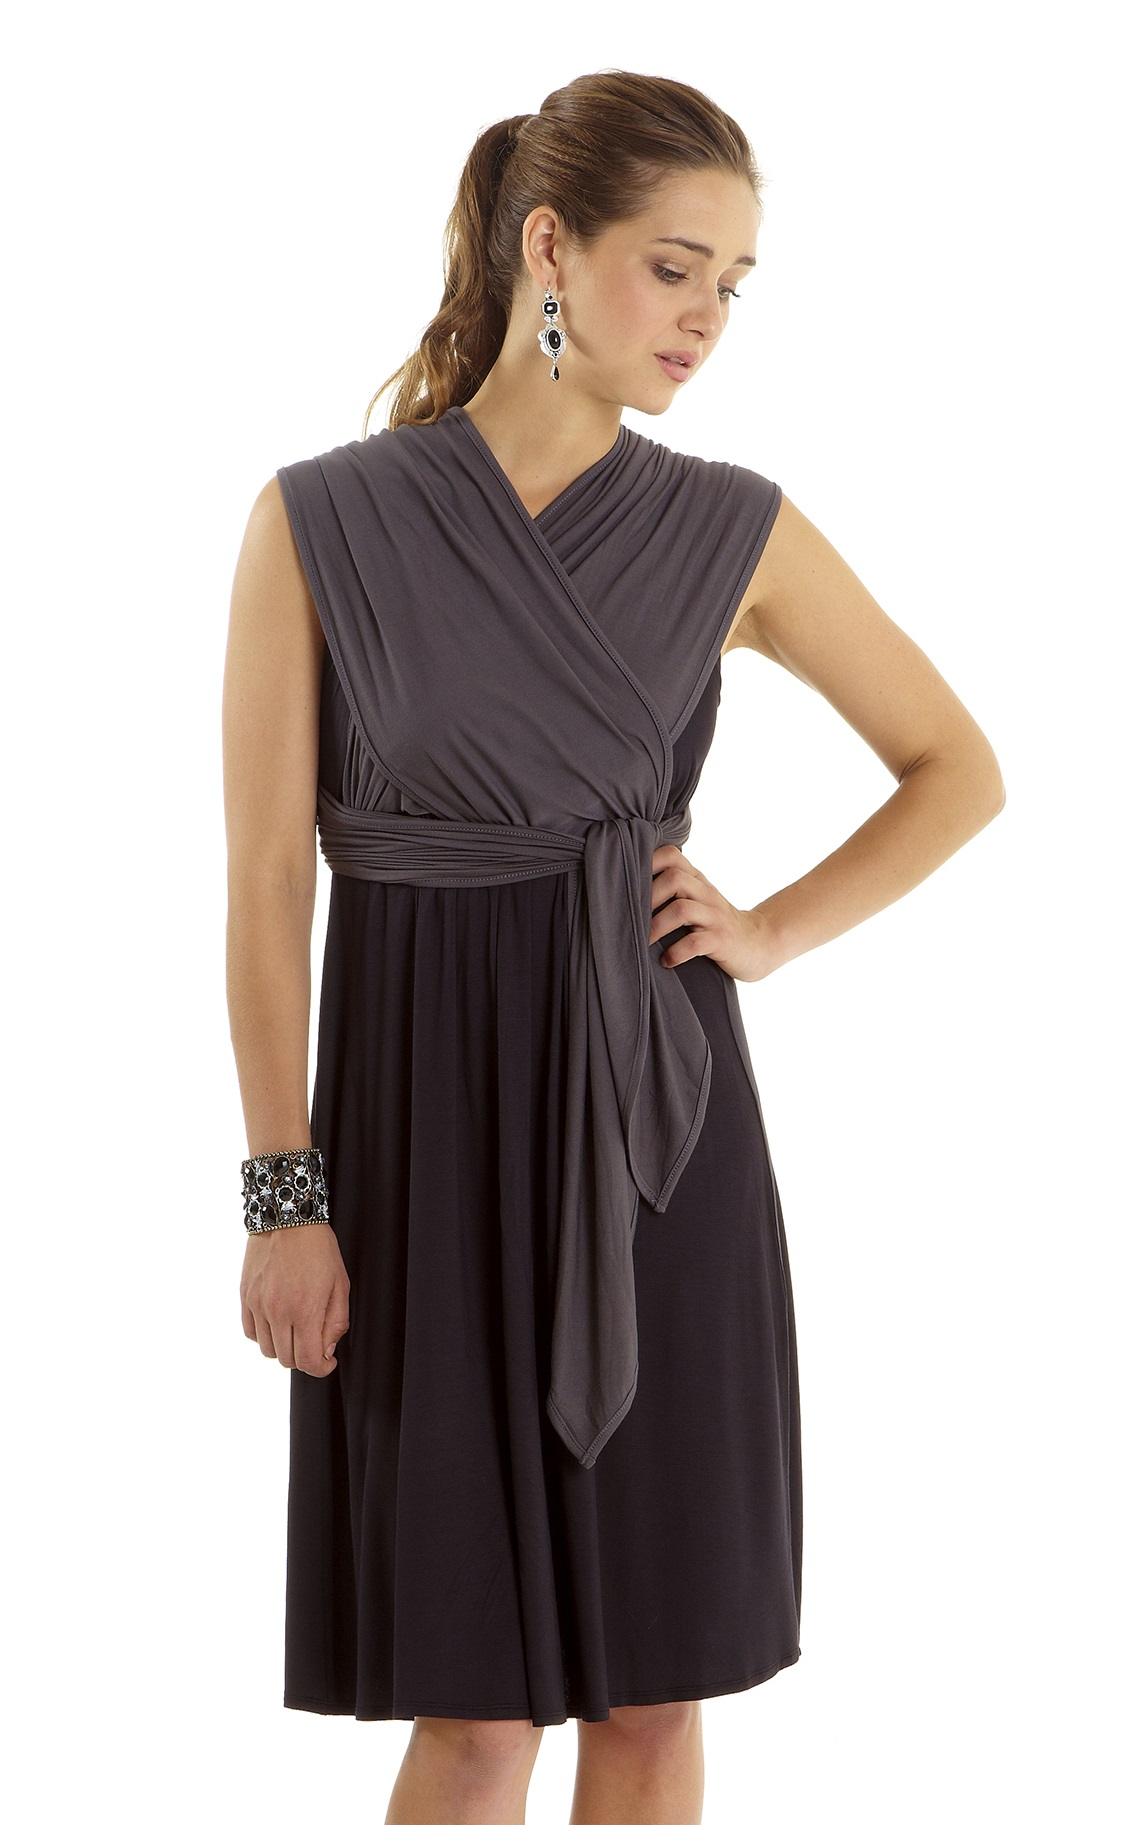 mothers-en-vogue-infinity-wrap-nursing-dress-3-close.jpg